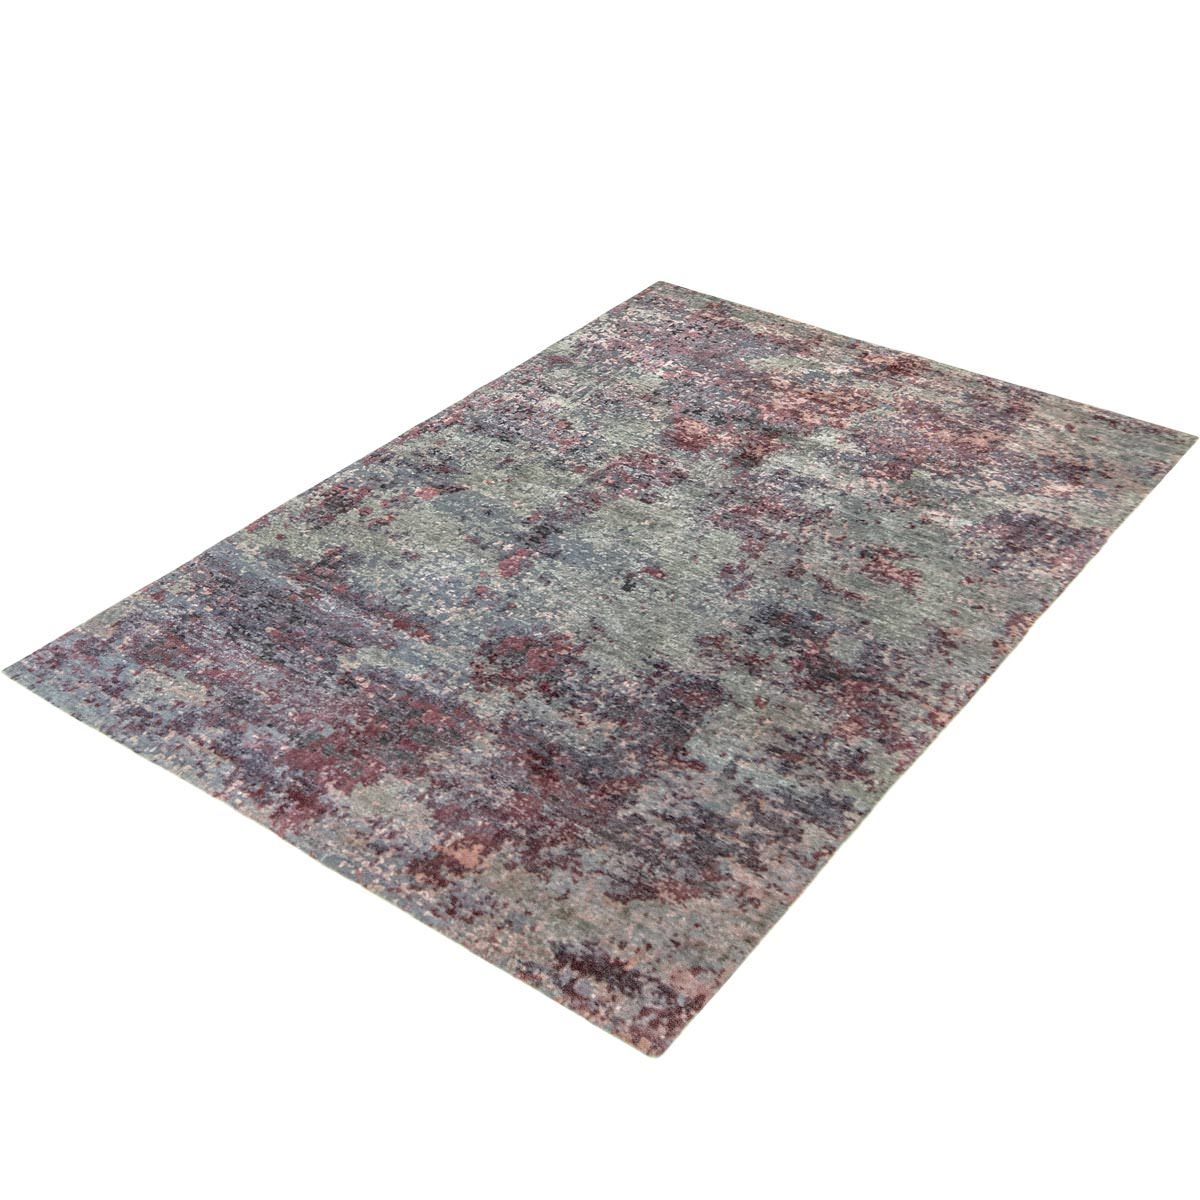 Venice Rug 21 Grey/Purple 3